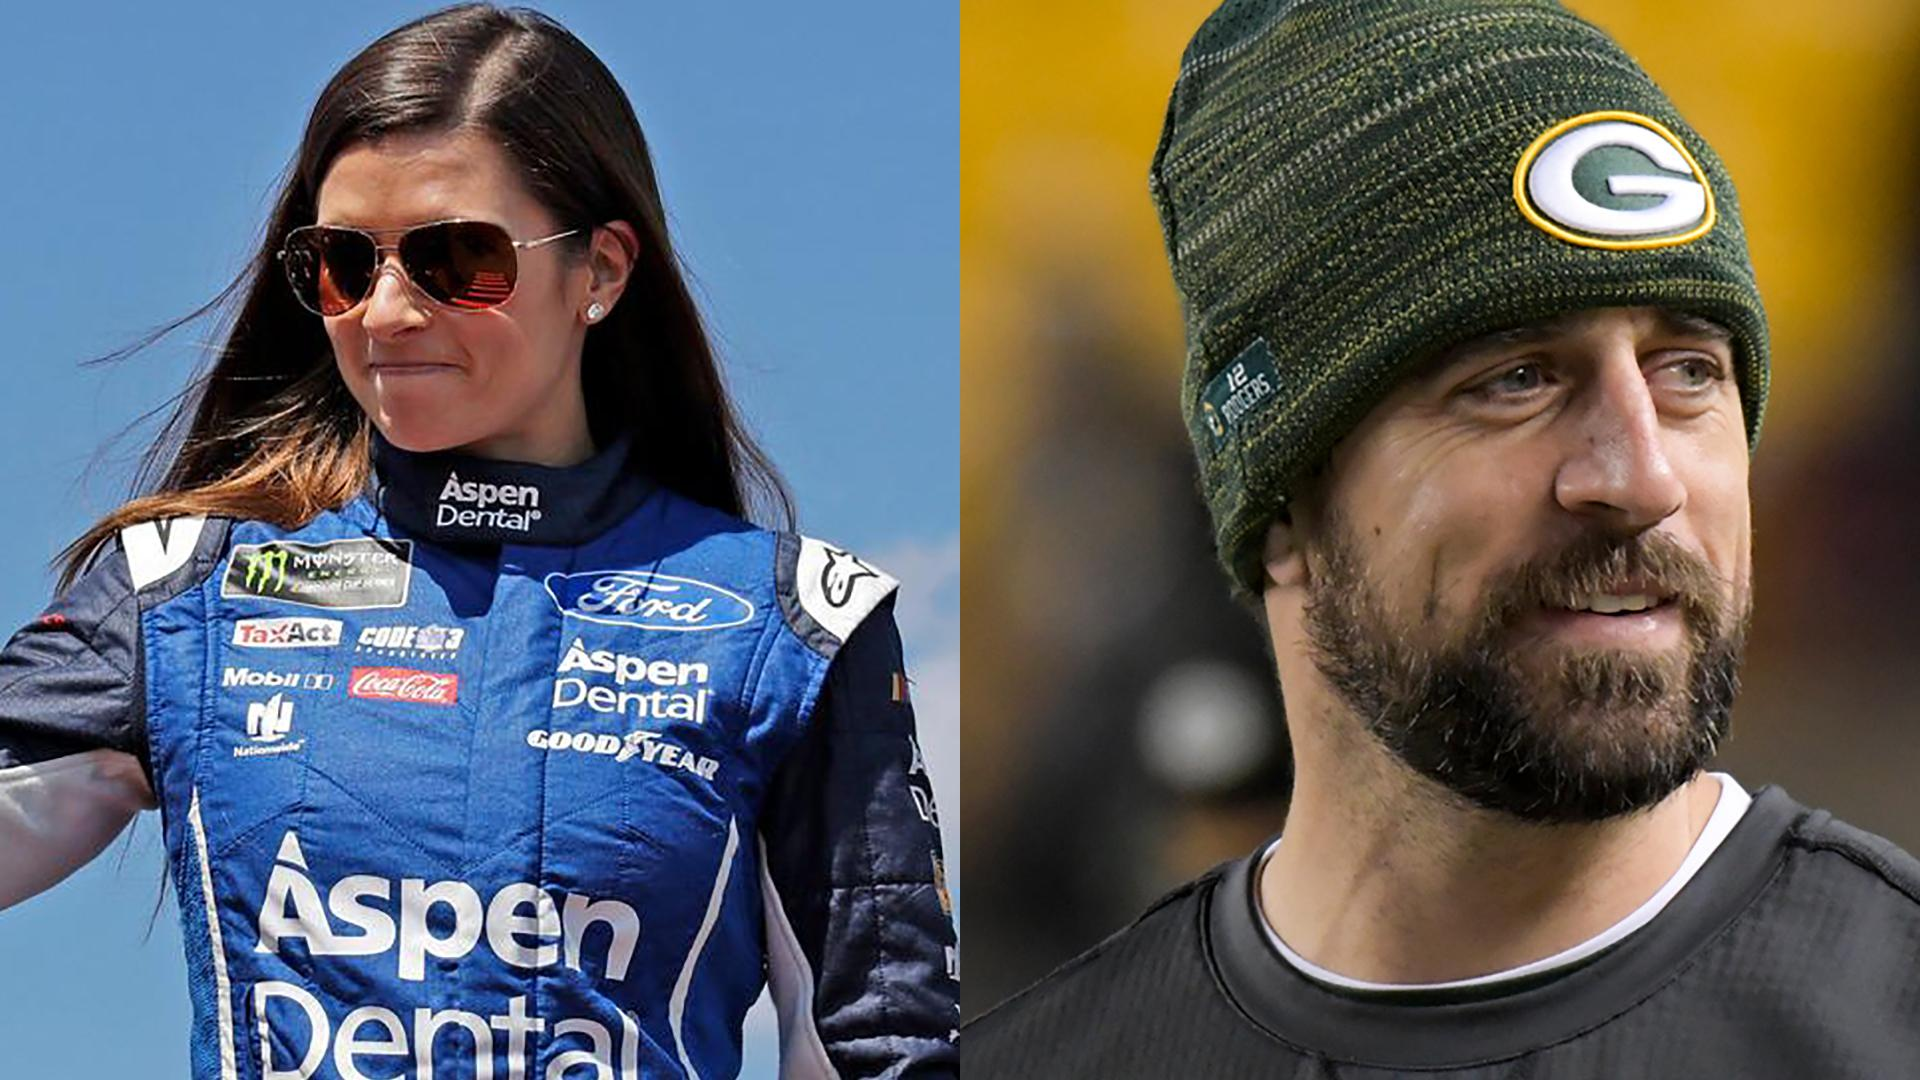 L-R July 16, 2017, file photo of NASCAR driver Danica Patrick,  Nov. 26, 2017 file photo of Green Bay Packers injured quarterback, Aaron Rodgers (AP Photo/Don Wright, File)